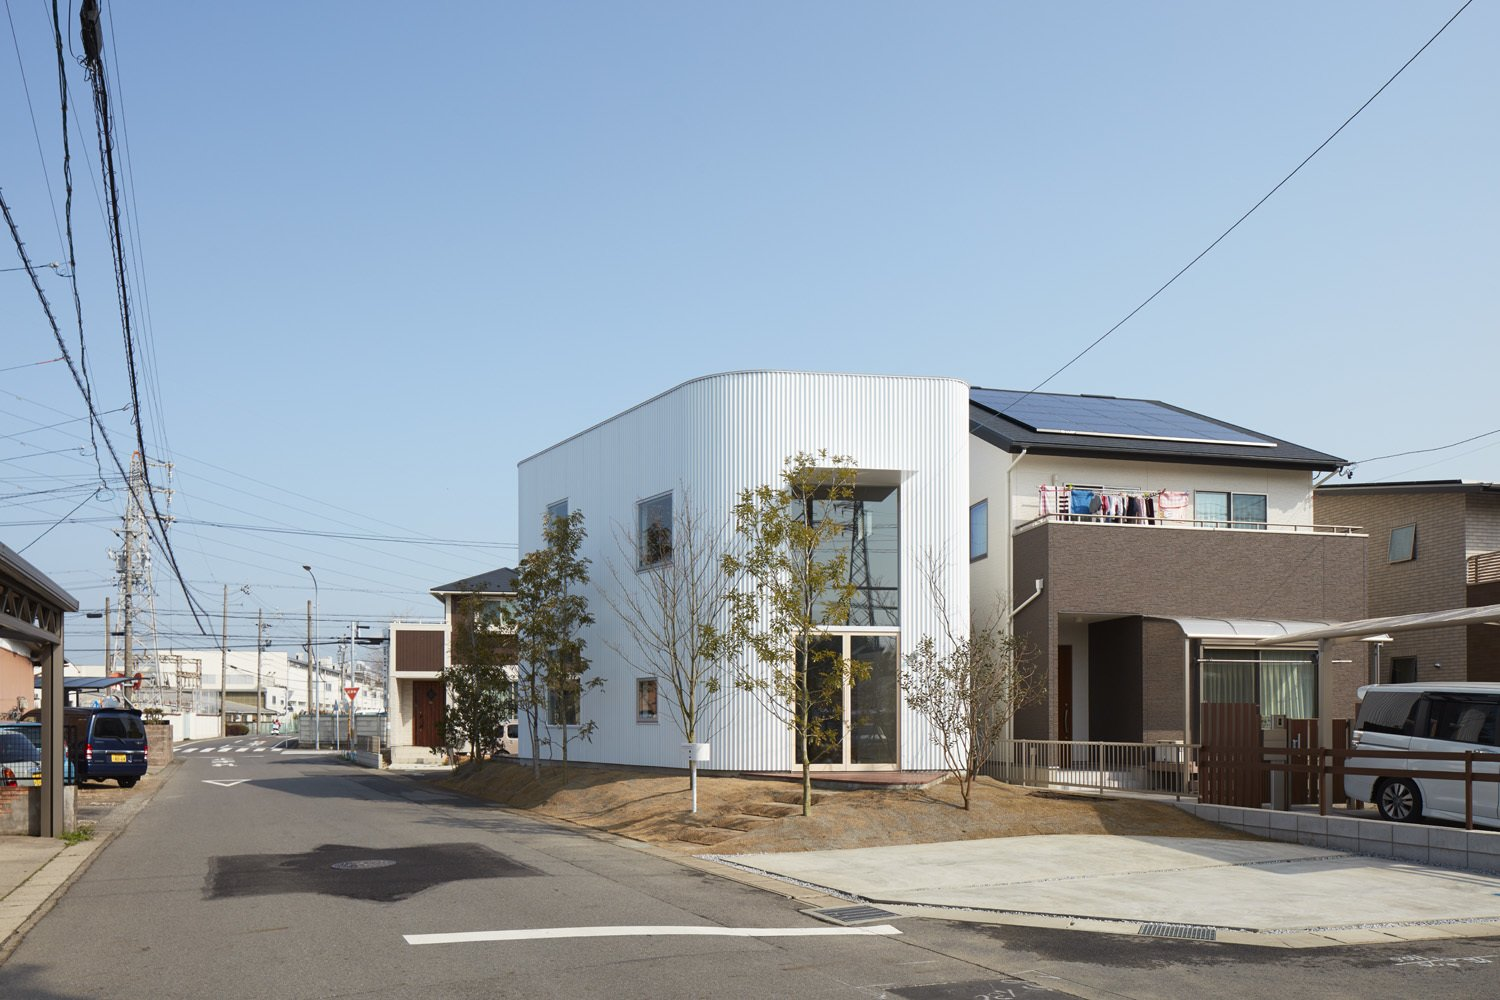 Photo 1 of 10 in House in Ohguchi by Airhouse